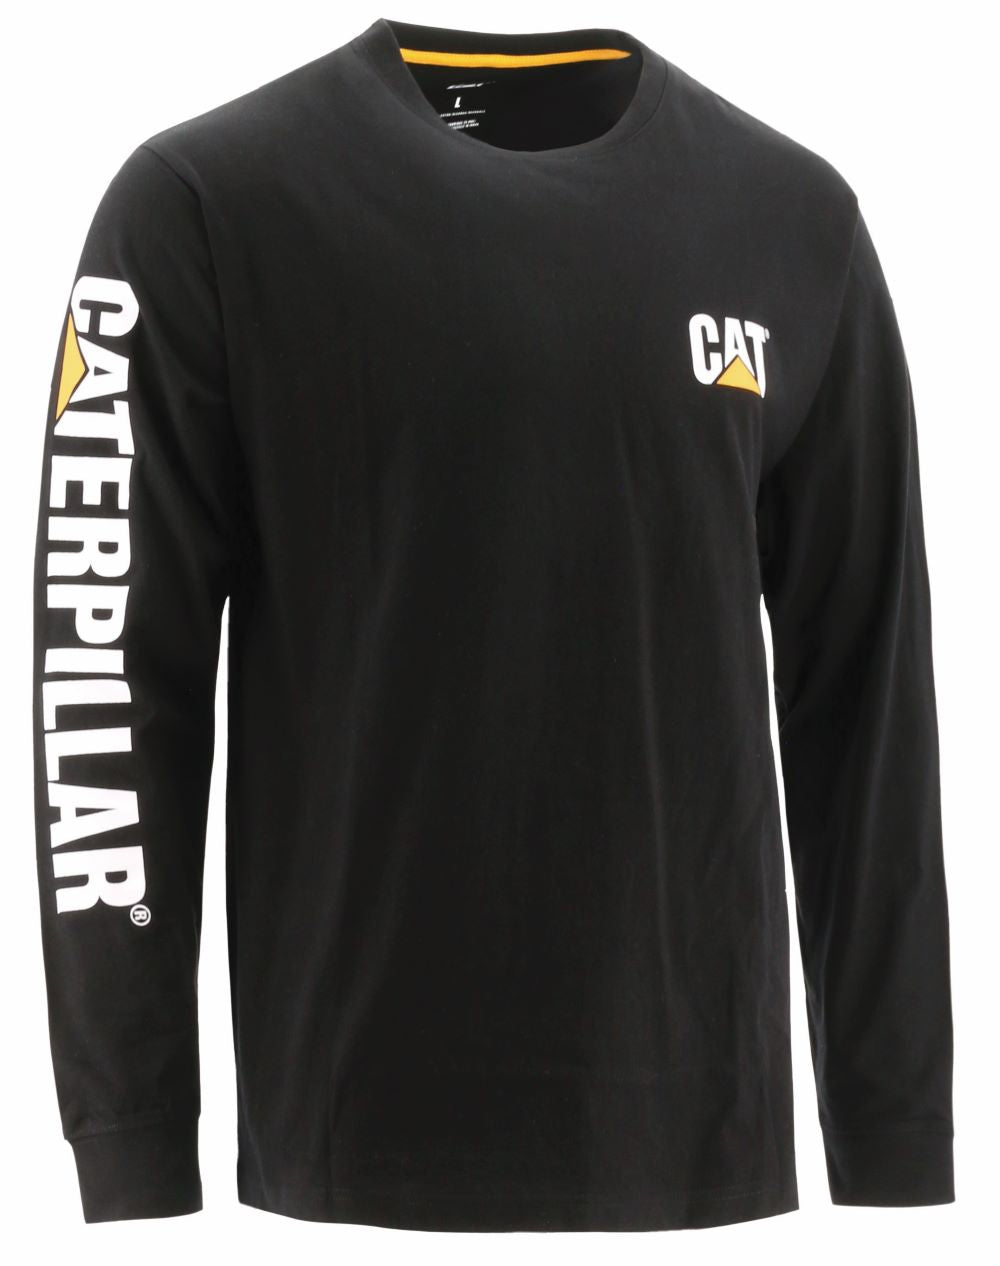 'Caterpillar' Men's Trademark Banner Tee - Black